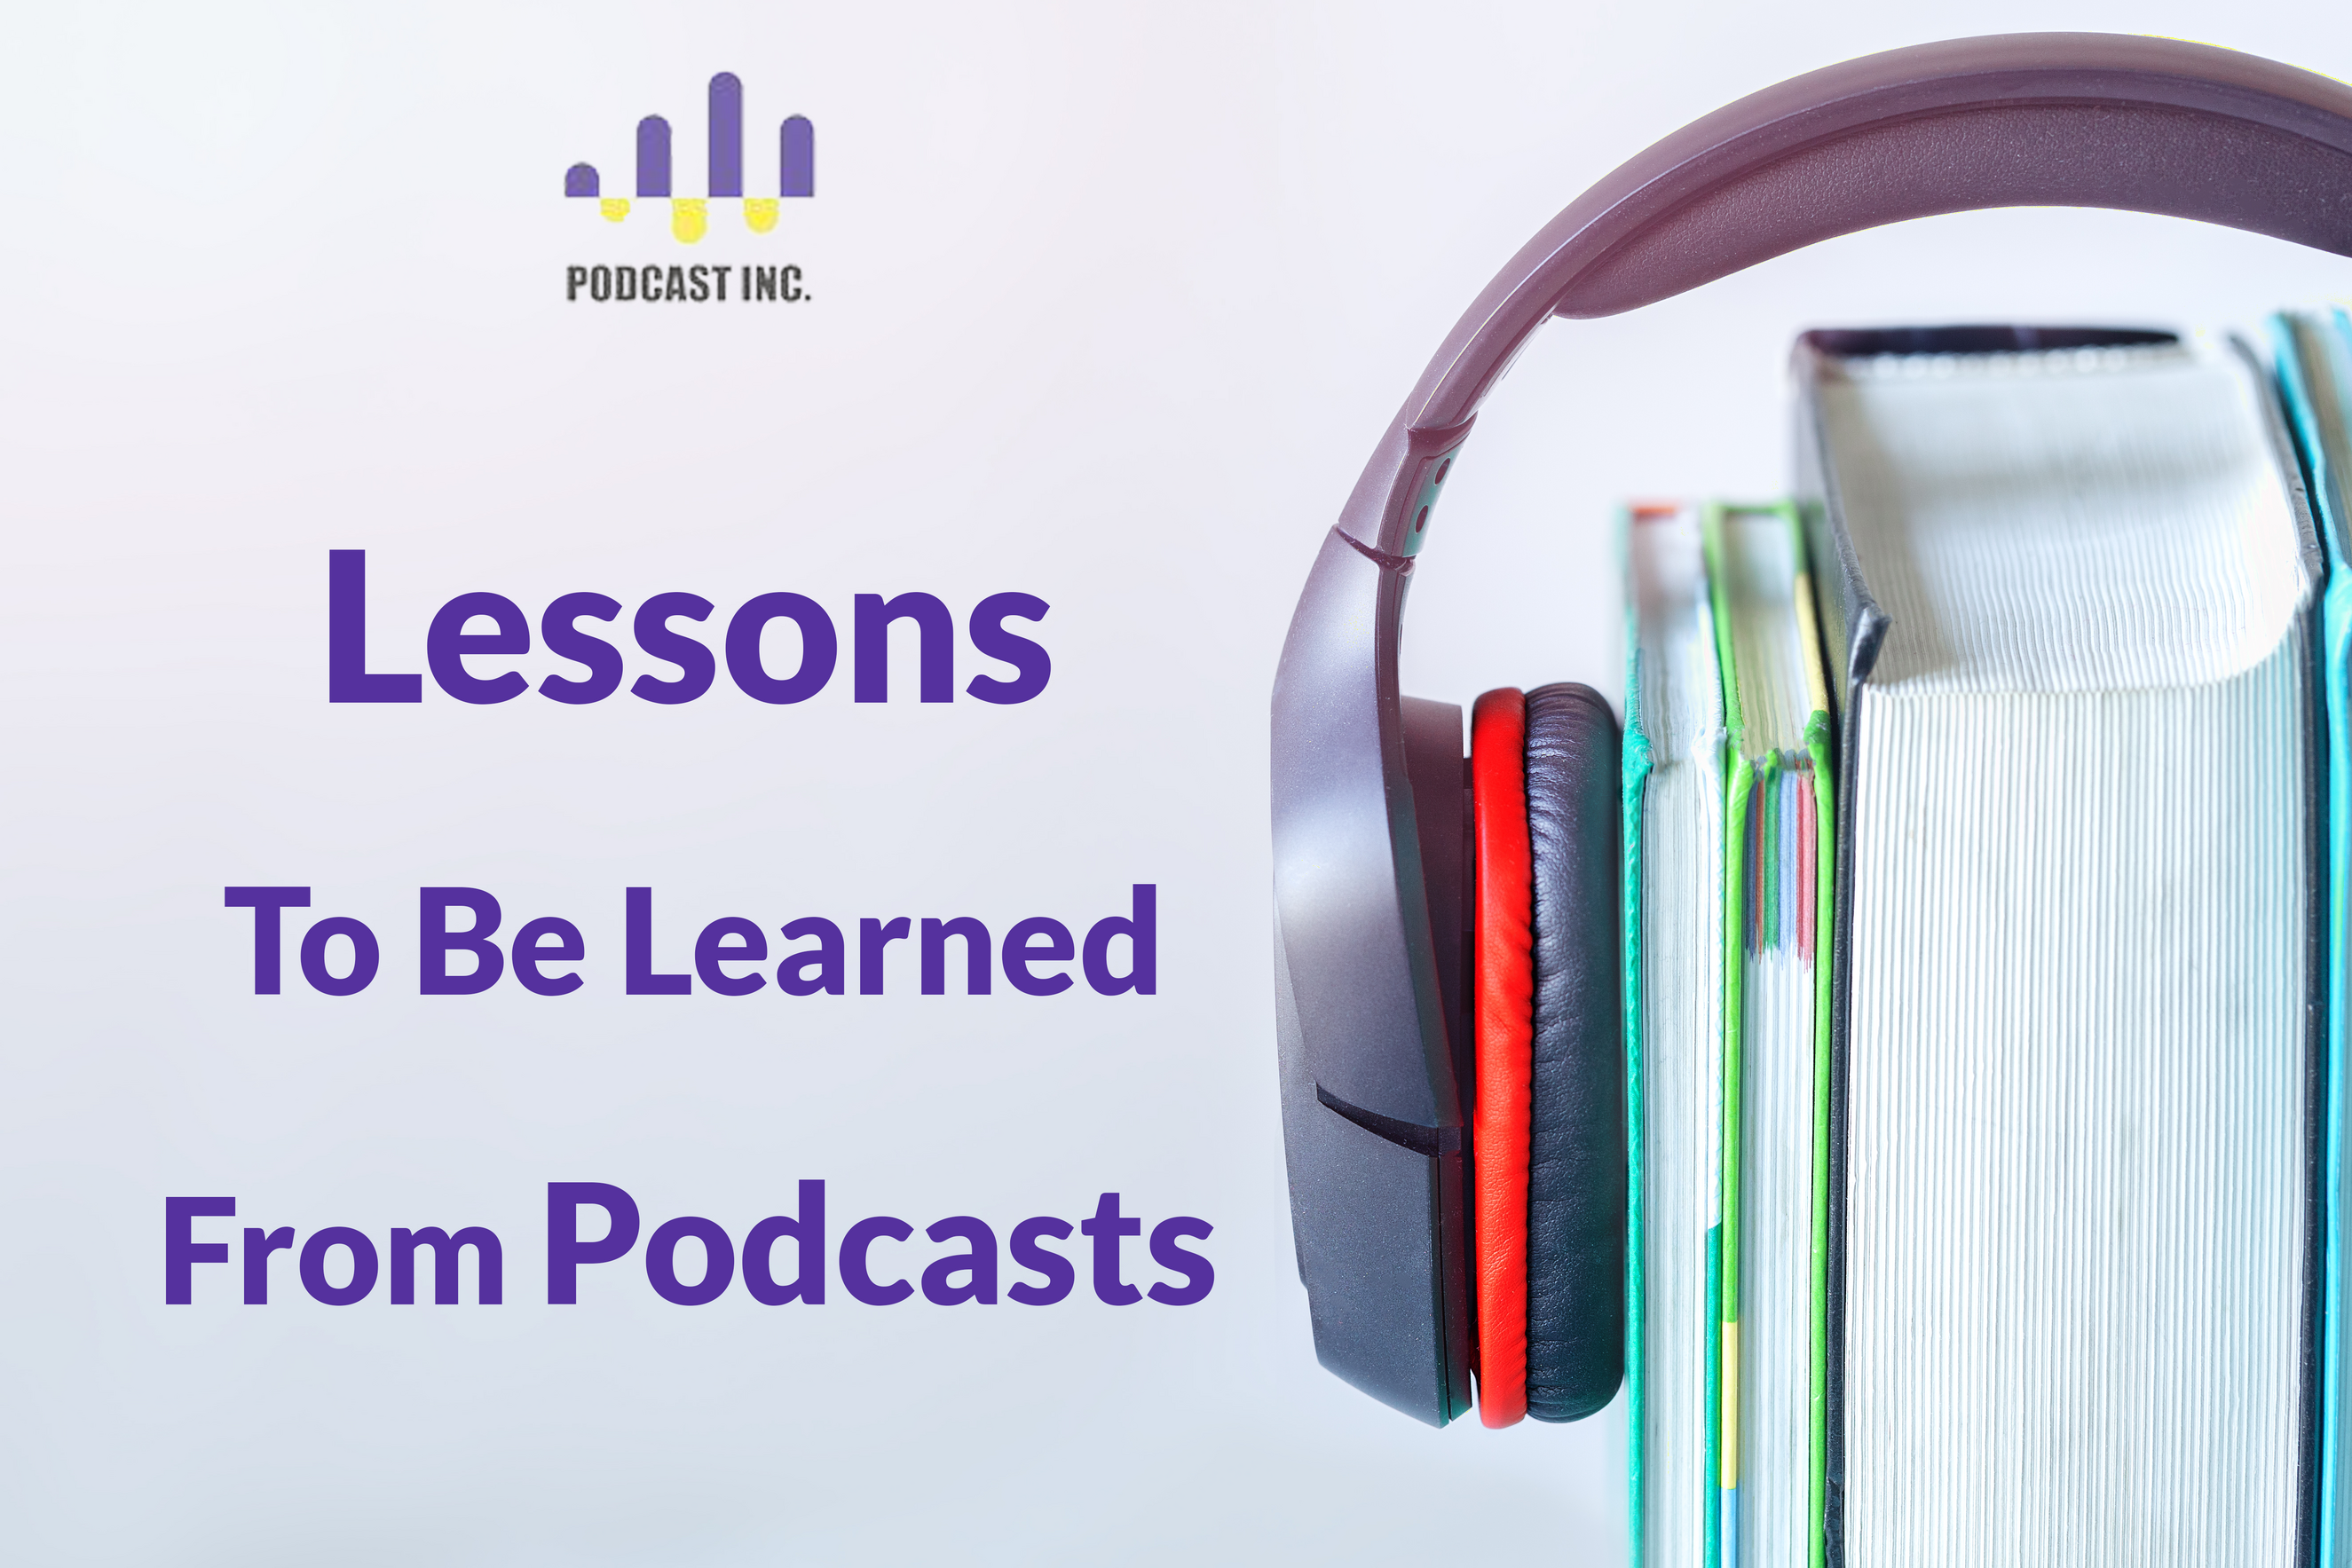 Lessons To Be Learned From Podcasts